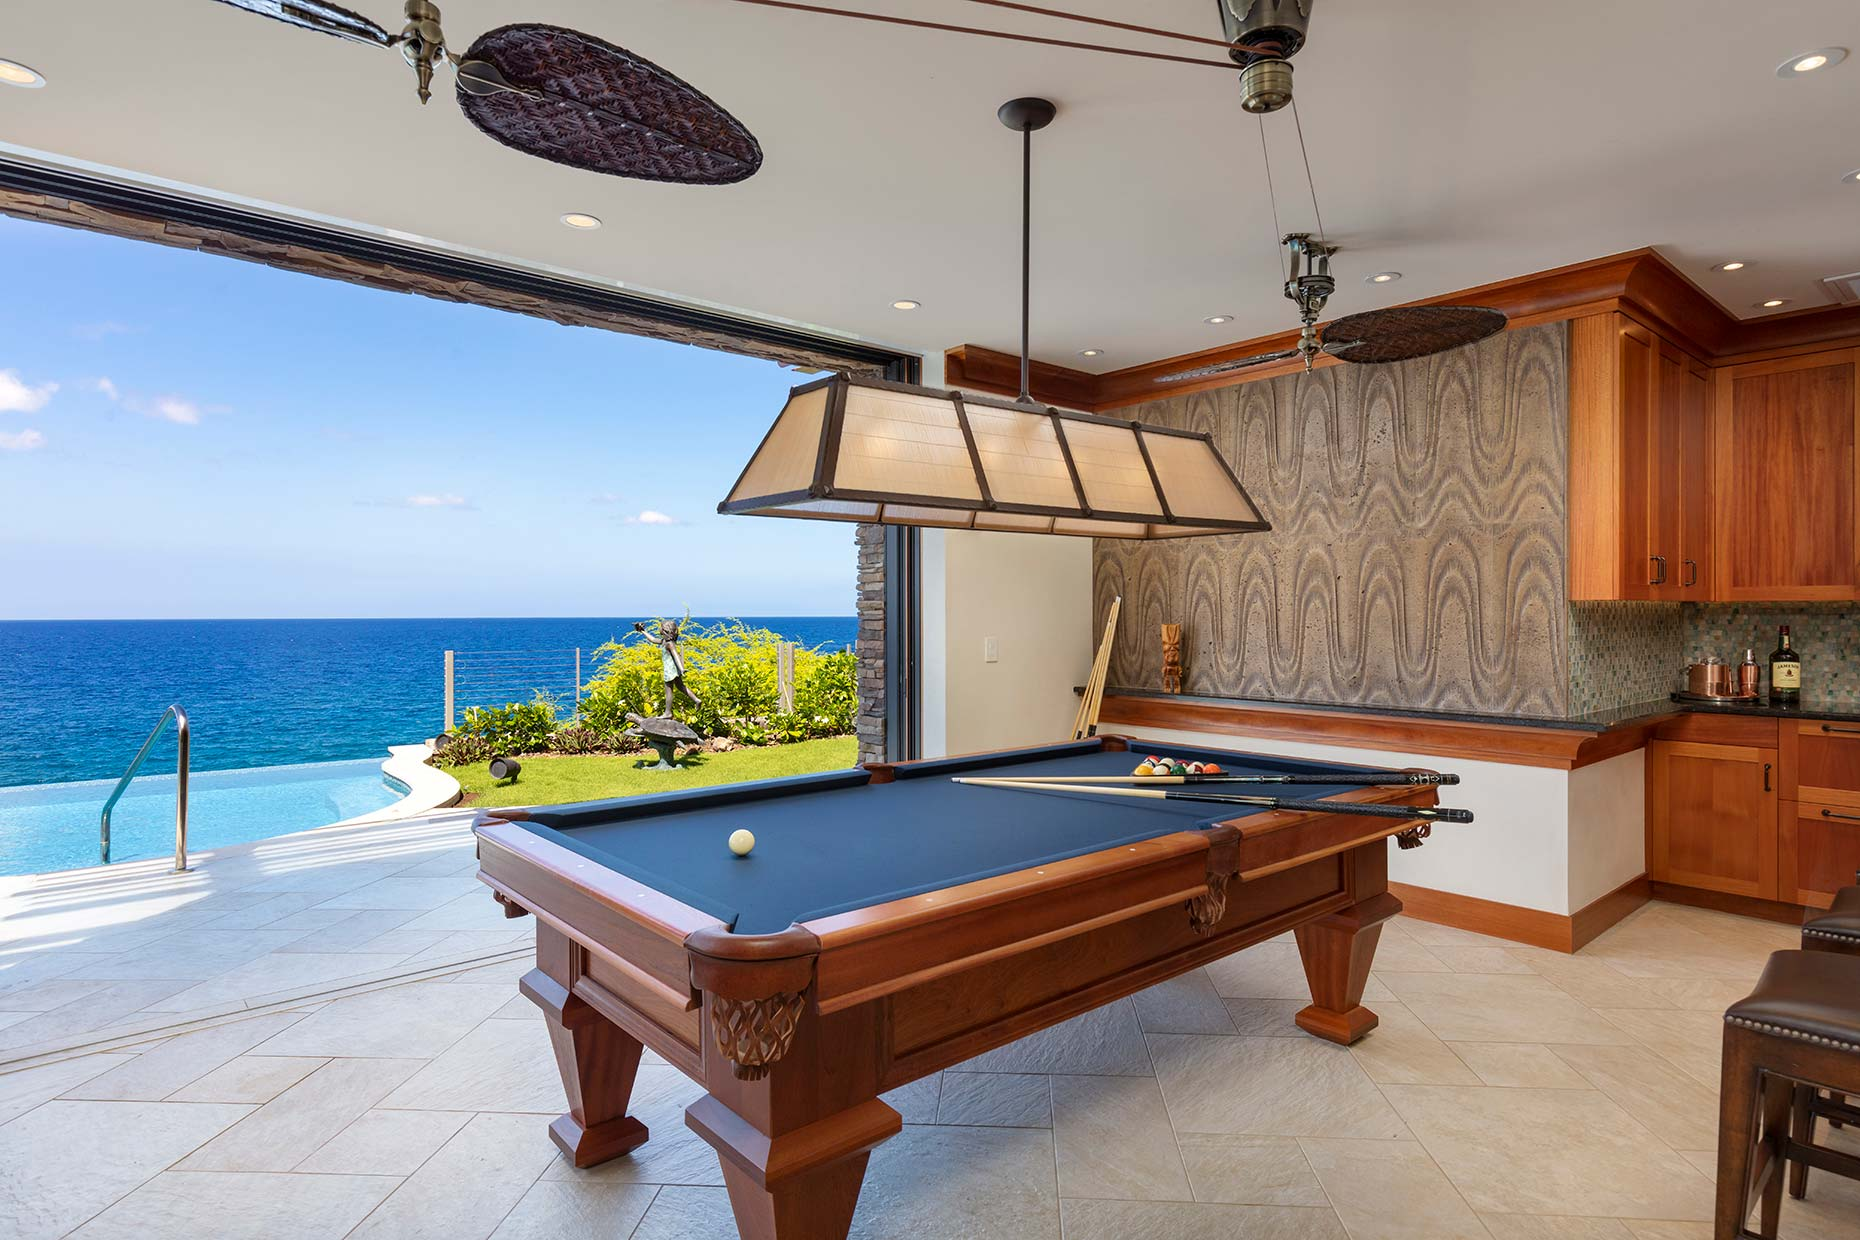 Hawaii game room waterfront luxury new construction home